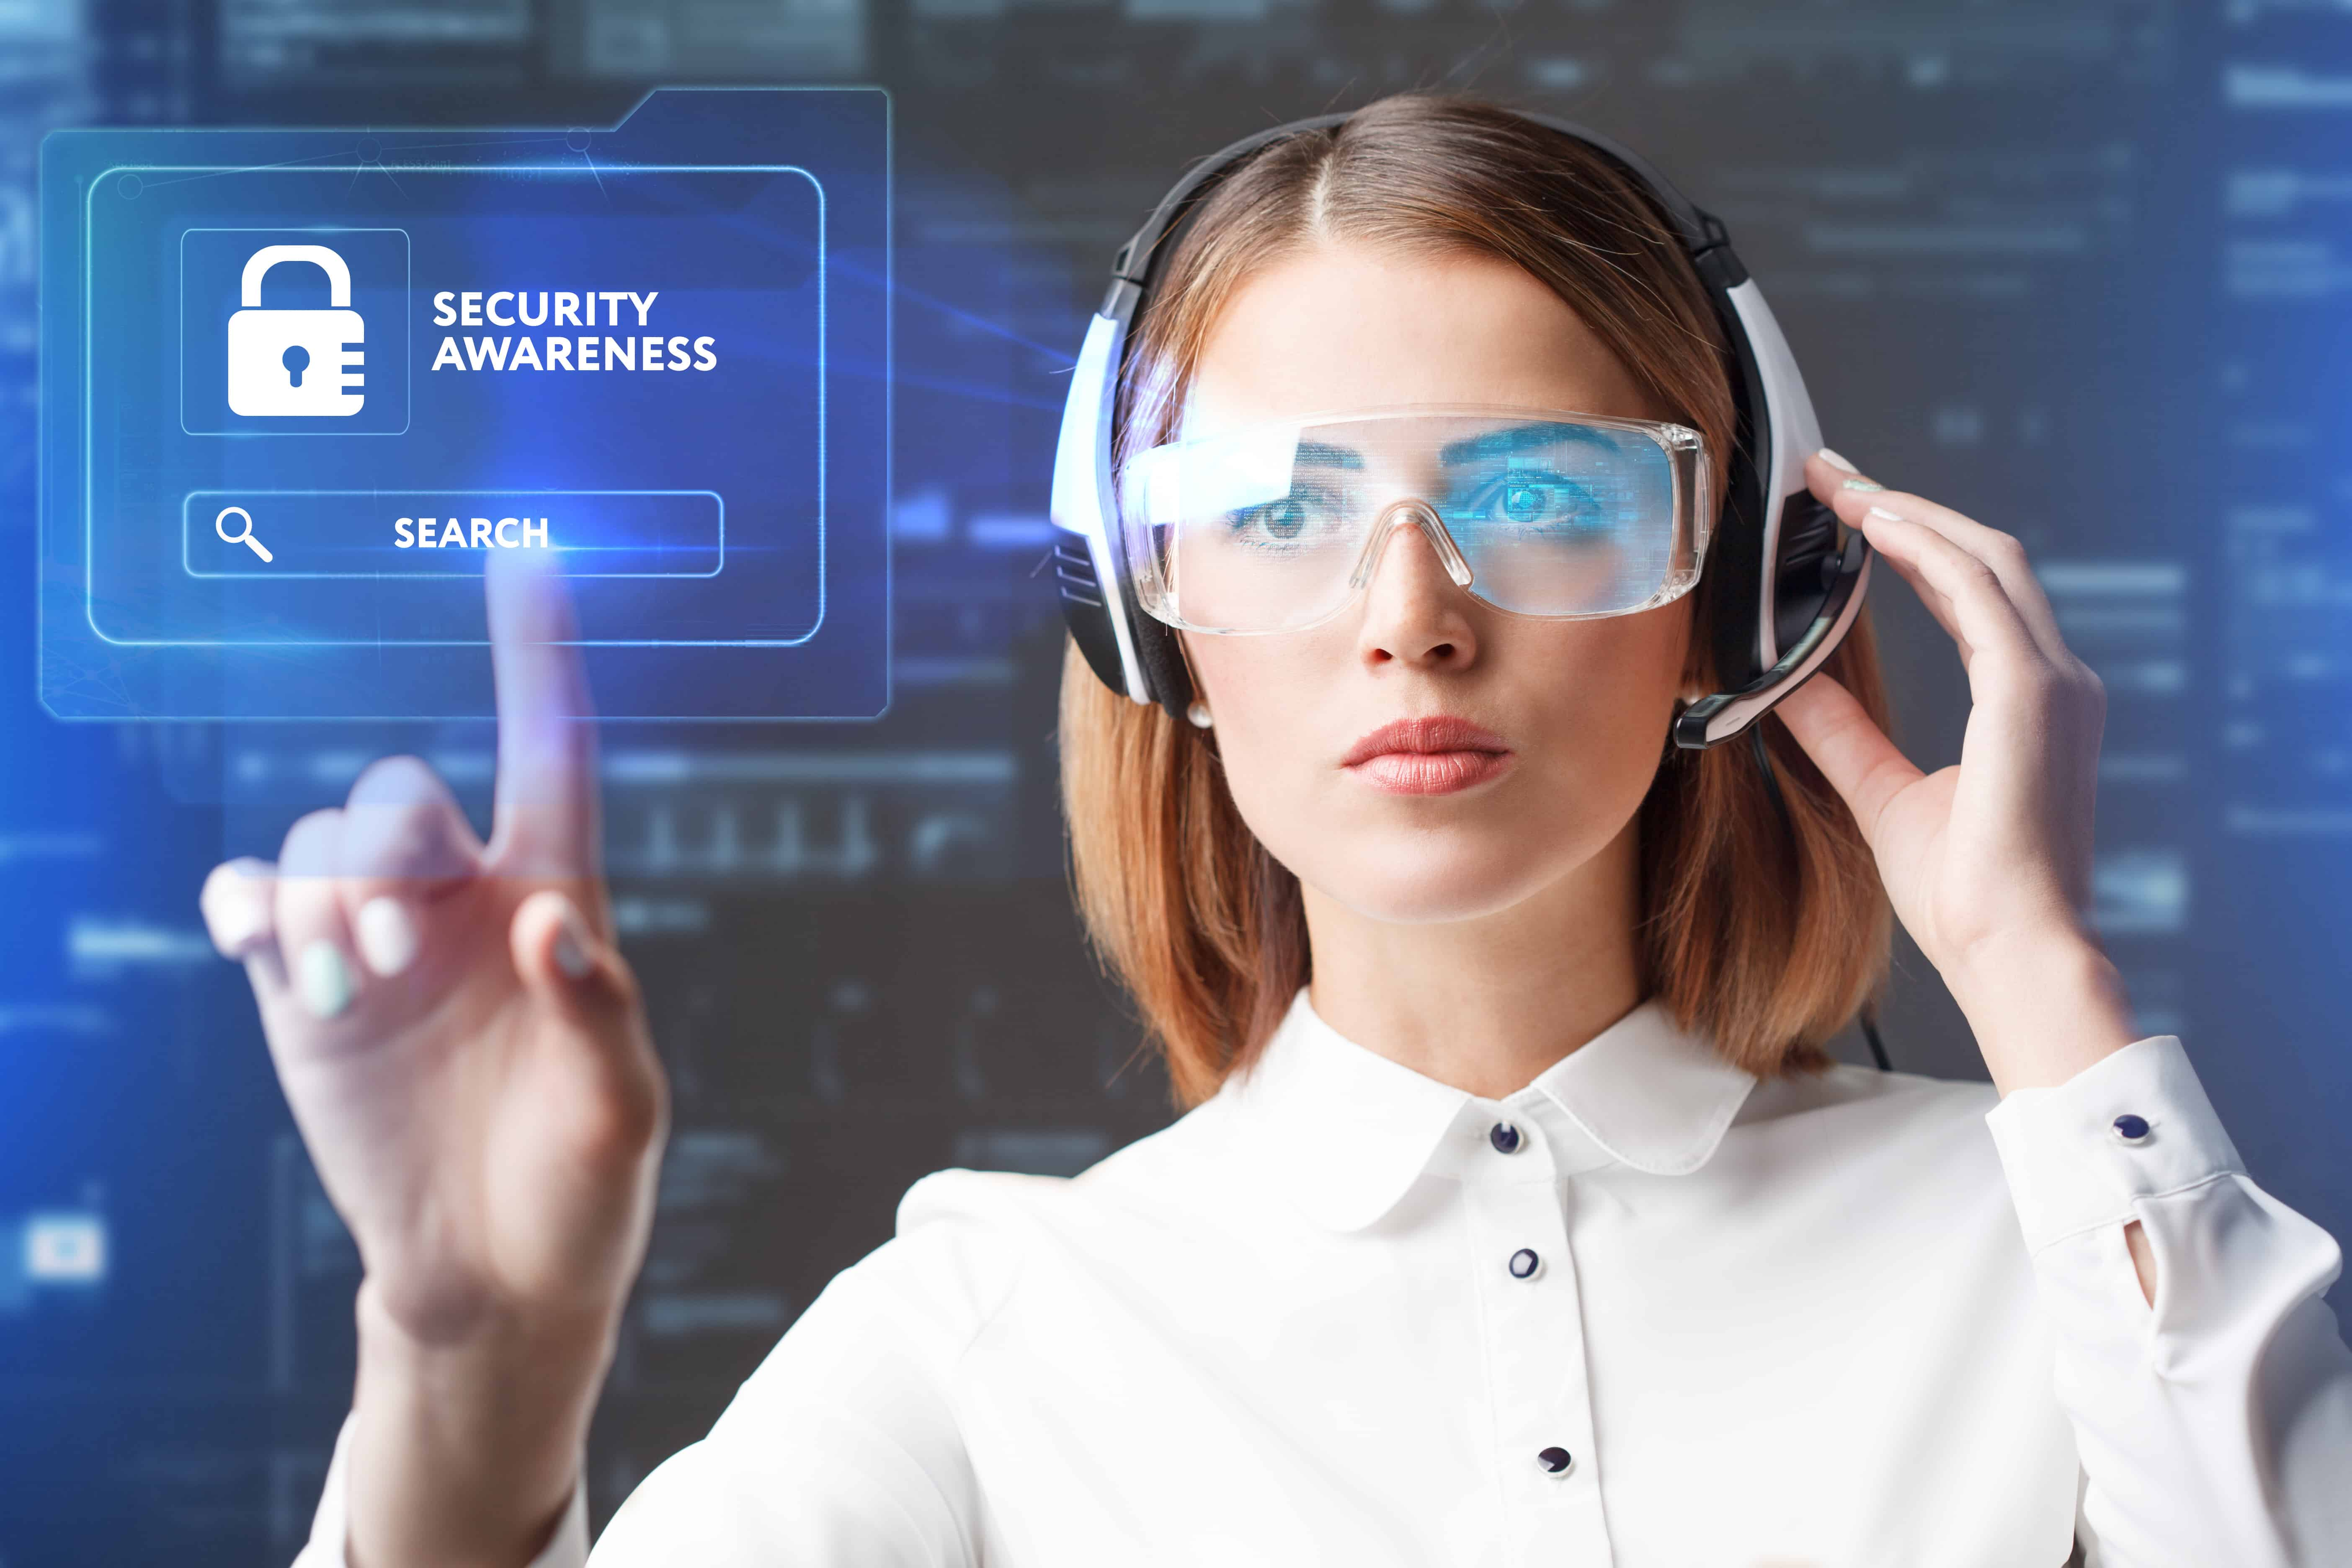 Learn about Insider Threat Awareness Month and the Process of mitigating insider threats.